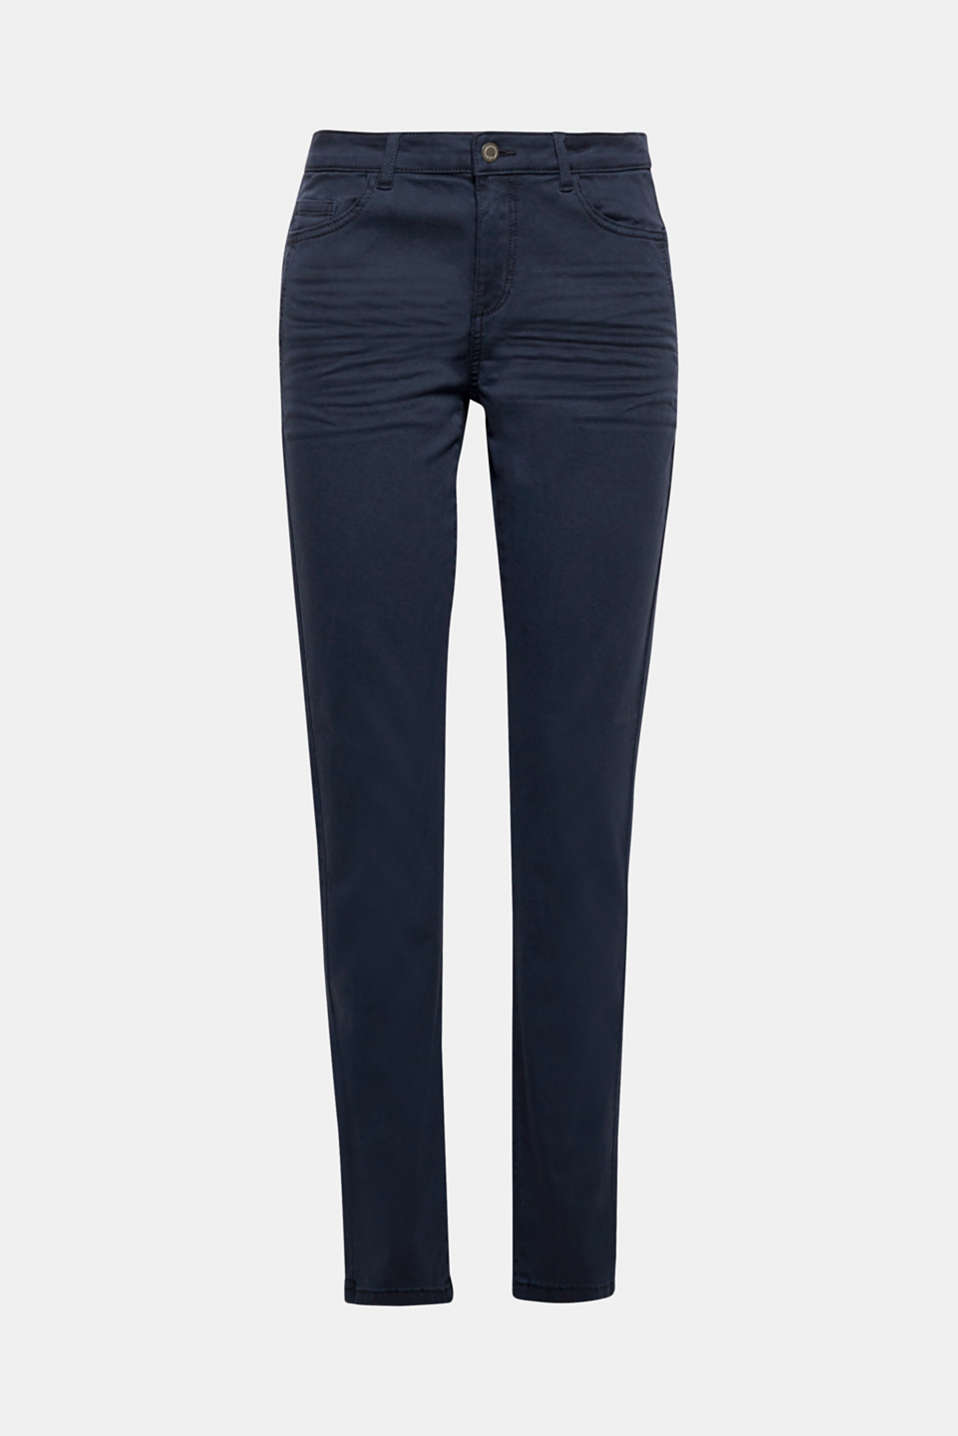 A classic fashion basic in lots of trendy colours: the whiskering gives these five-pocket stretch trousers made of cotton twill a cool styling update.